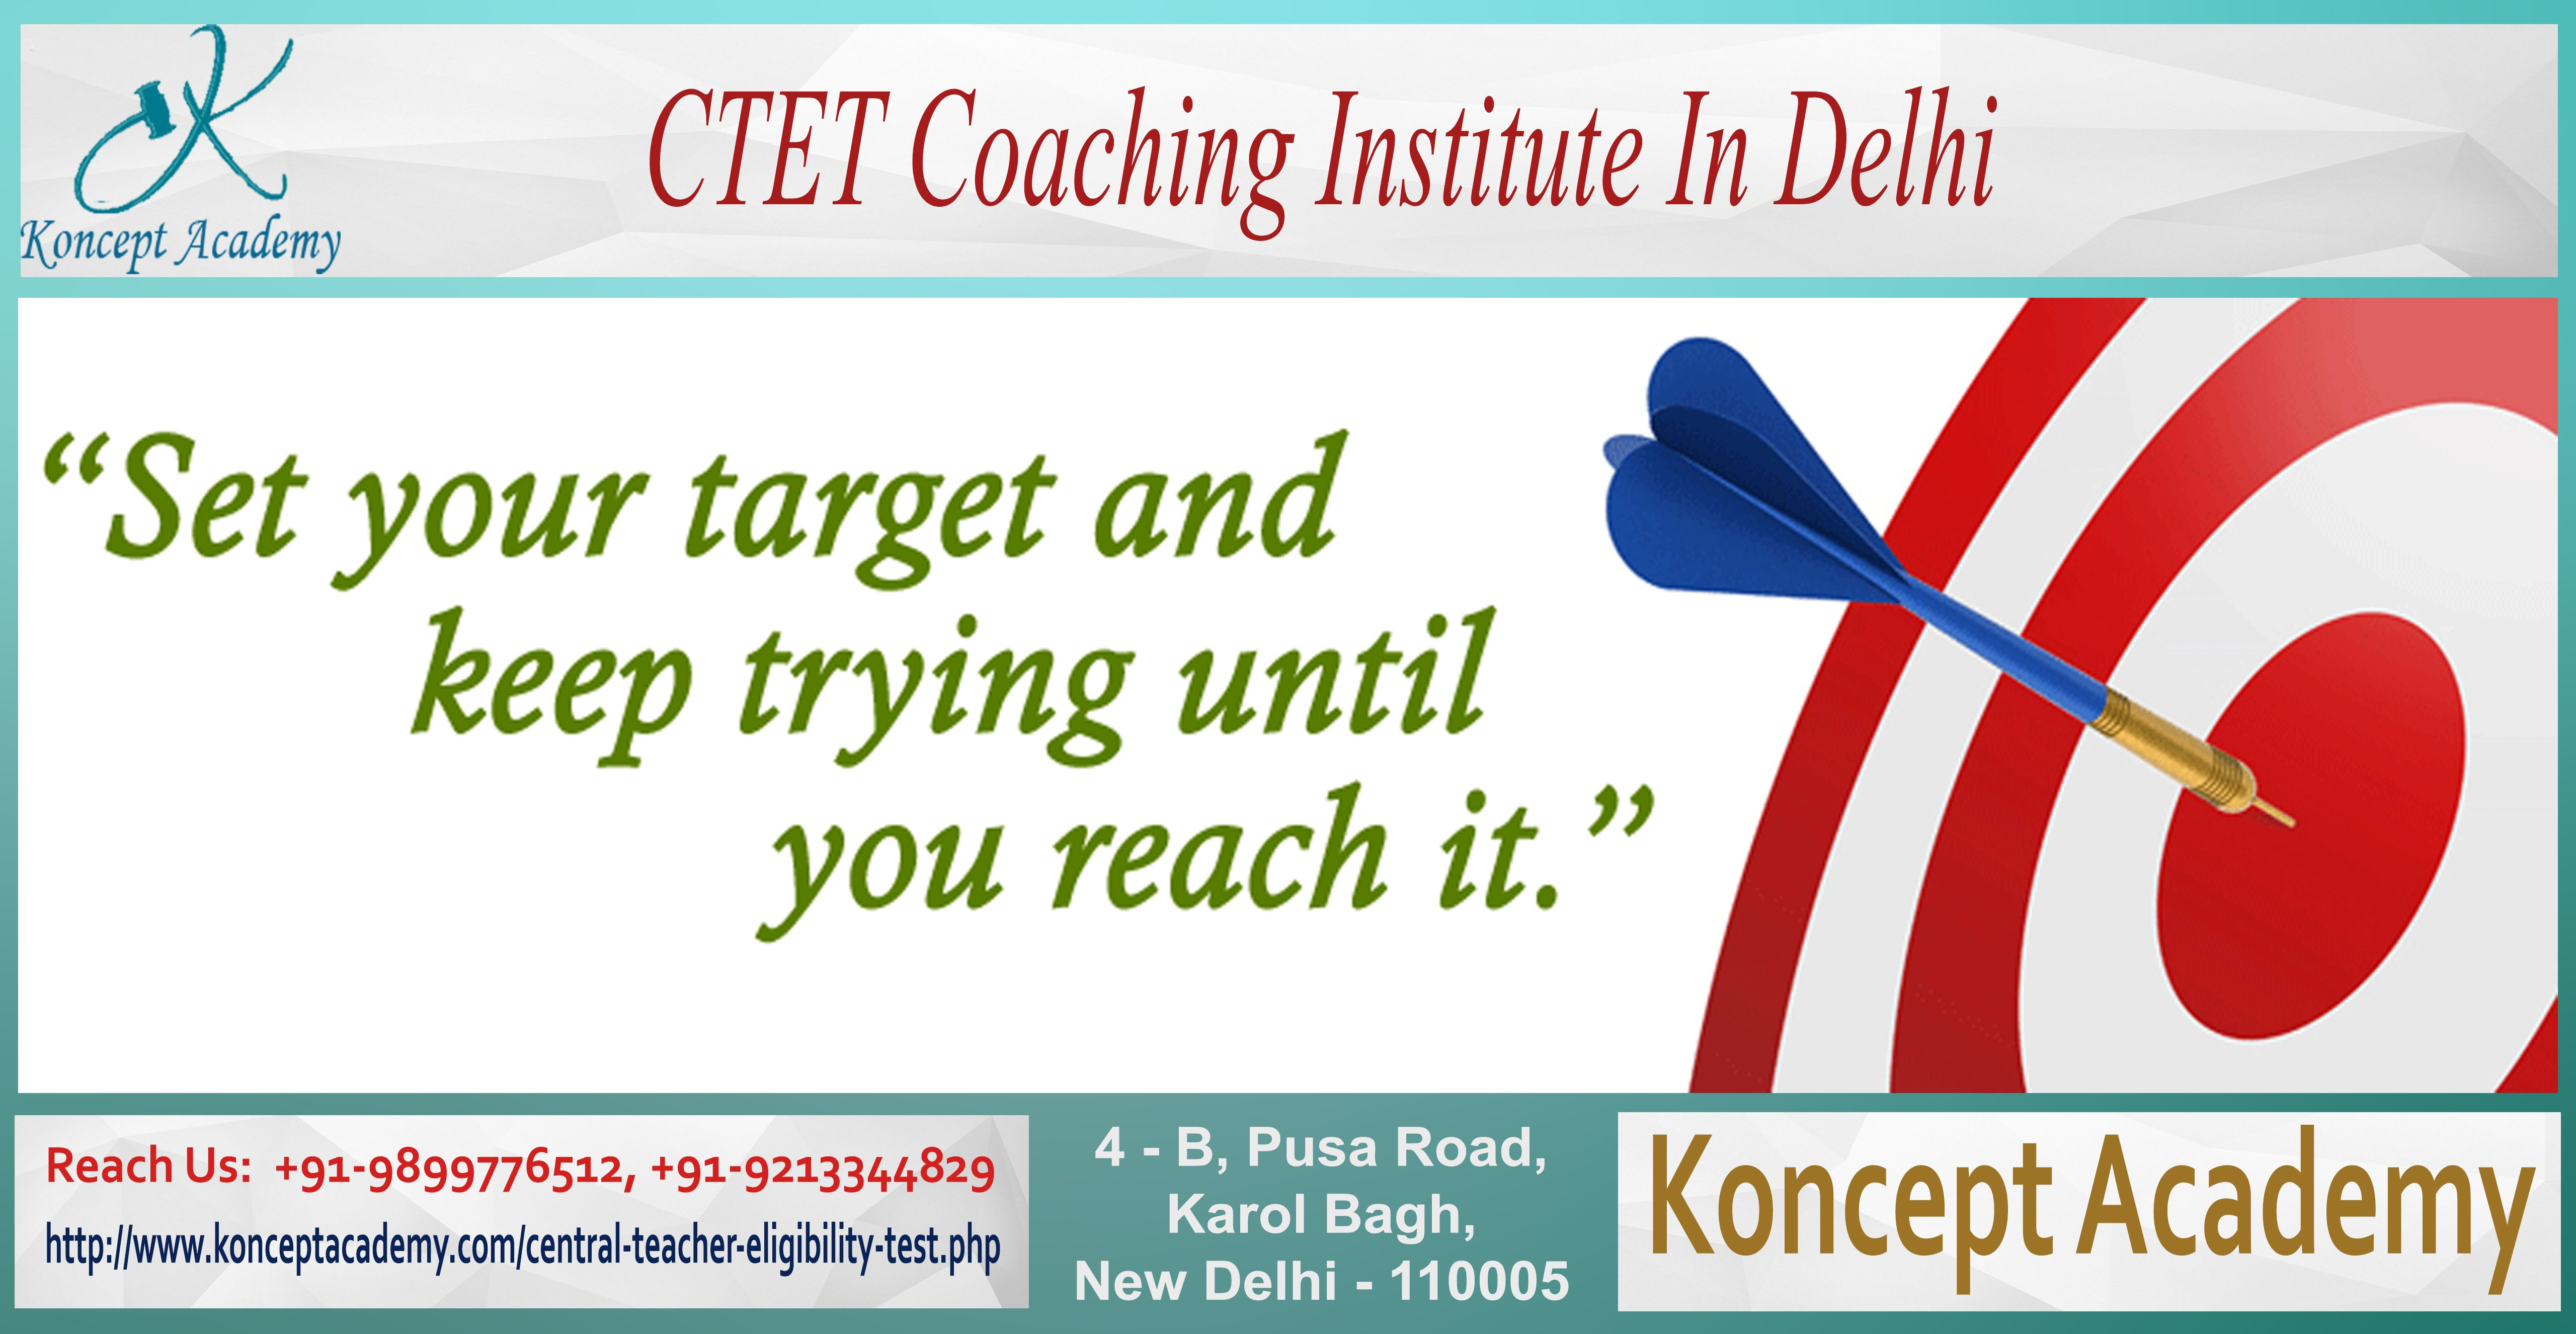 """""""Attend CTET Coaching Classes in Delhi to Prepare for Forthcoming CTET Exams"""" Being a best ctet coaching institute in delhi, Koncept Academy is inviting aspiring candidates who wants to become a teacher, to join high inspiring ctet coaching classes in delhi that is of course helpful in getting prepared for entrance exams and make chance to clear the exams. Visit our web portal http://www.konceptacademy.com/central-teacher-eligibility-test.php for complete information."""